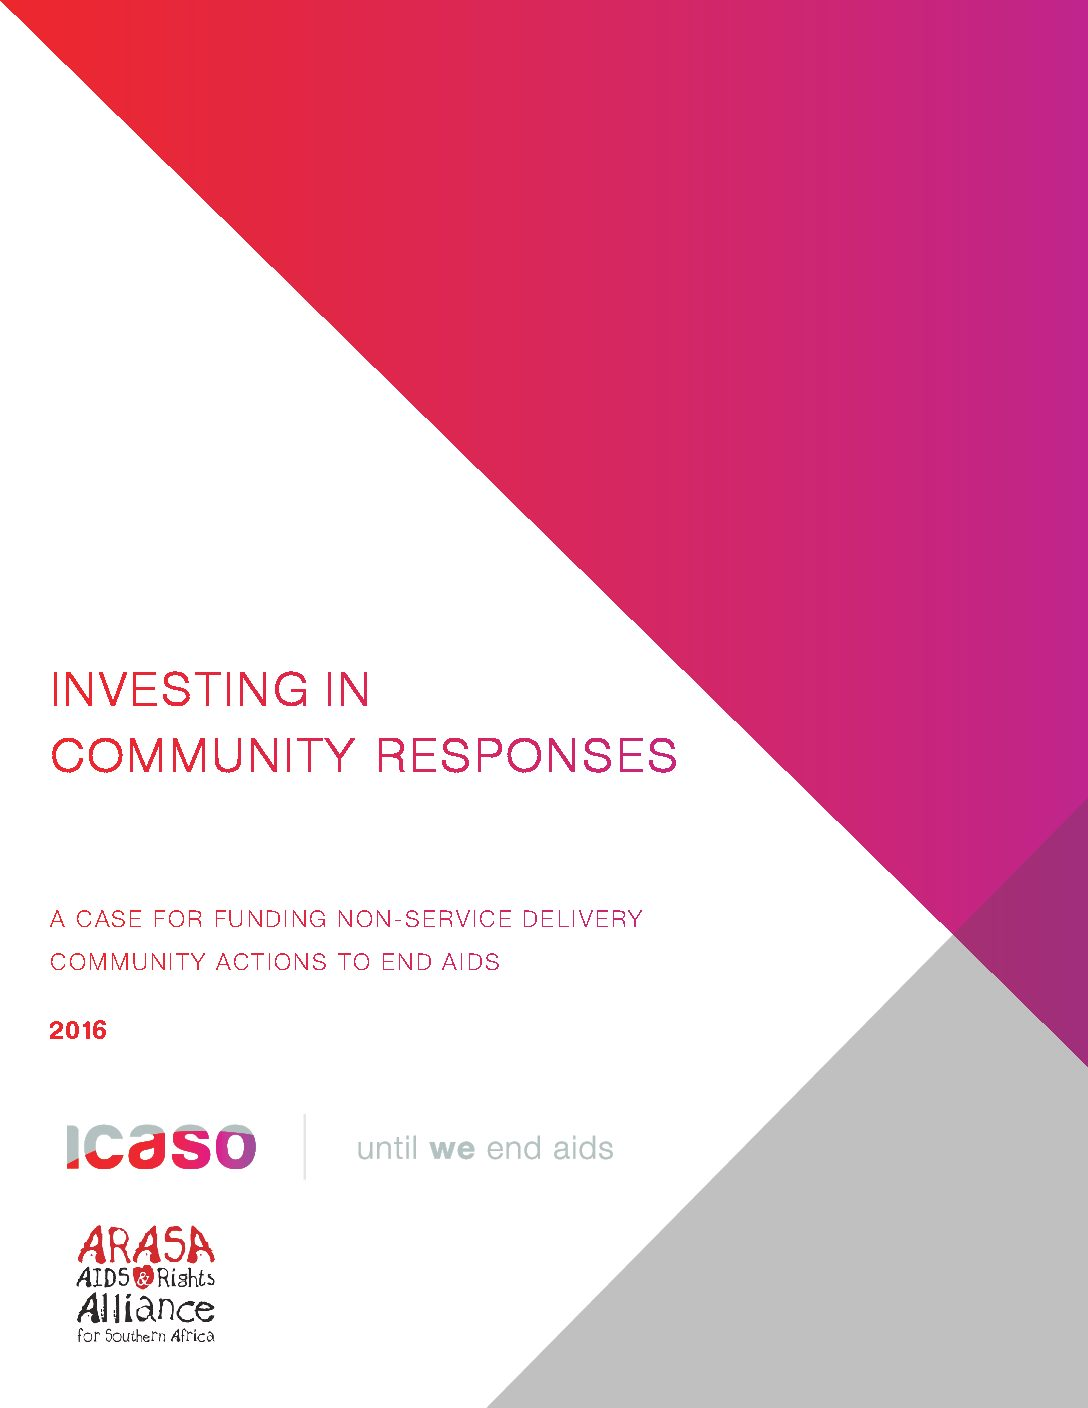 Investing in community responses. A case for funding non-service delivery community actions to end AIDS